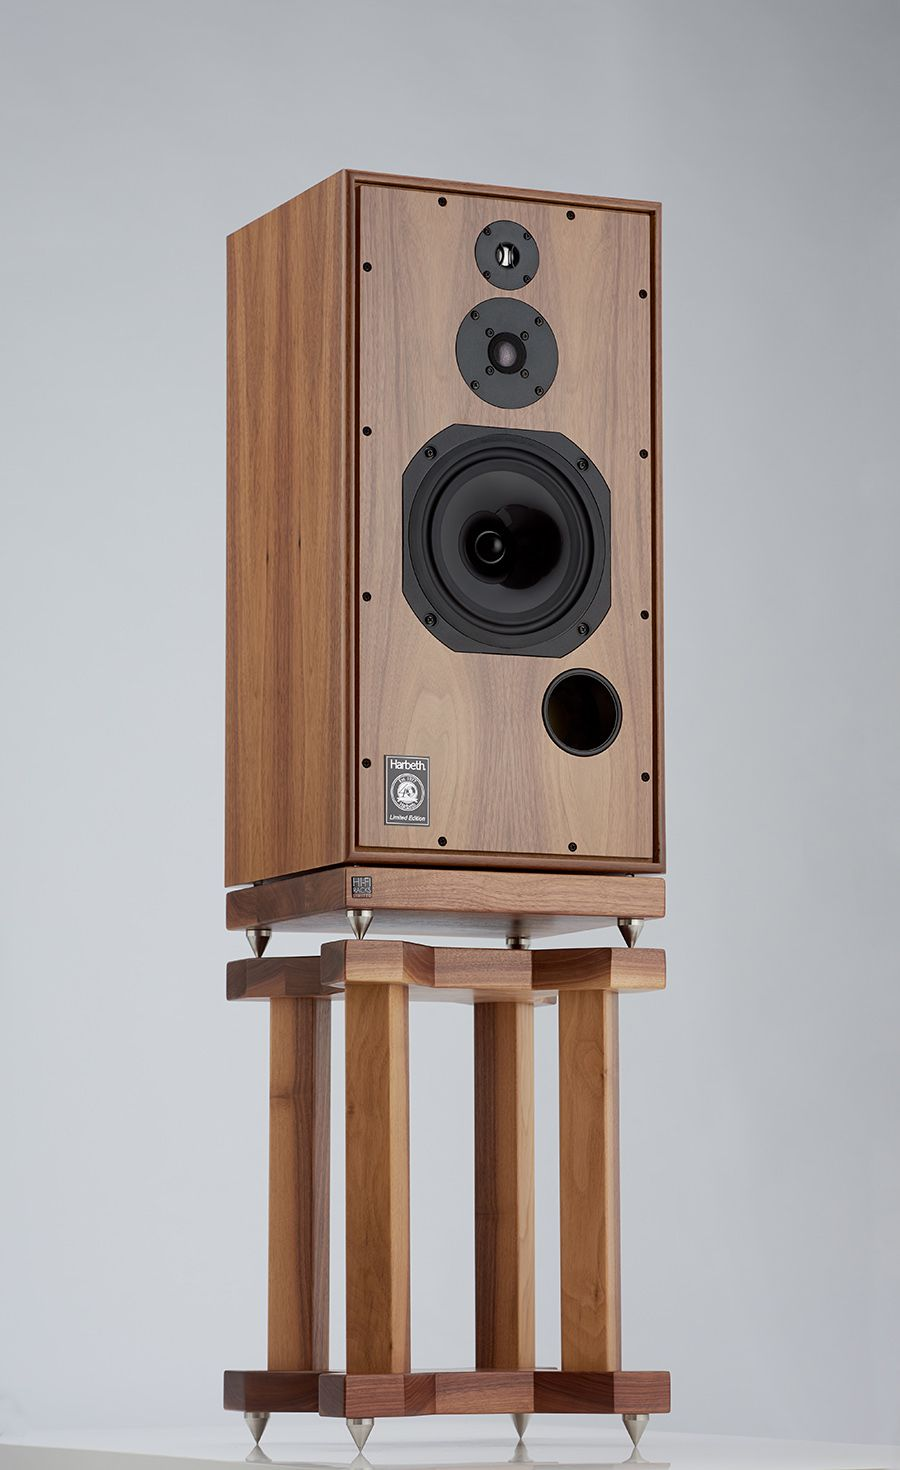 Skema box speaker woofer search results woodworking project ideas - Hifi News British Speaker Brand Harbeth Celebrate Anniversary With Limited Edition Products